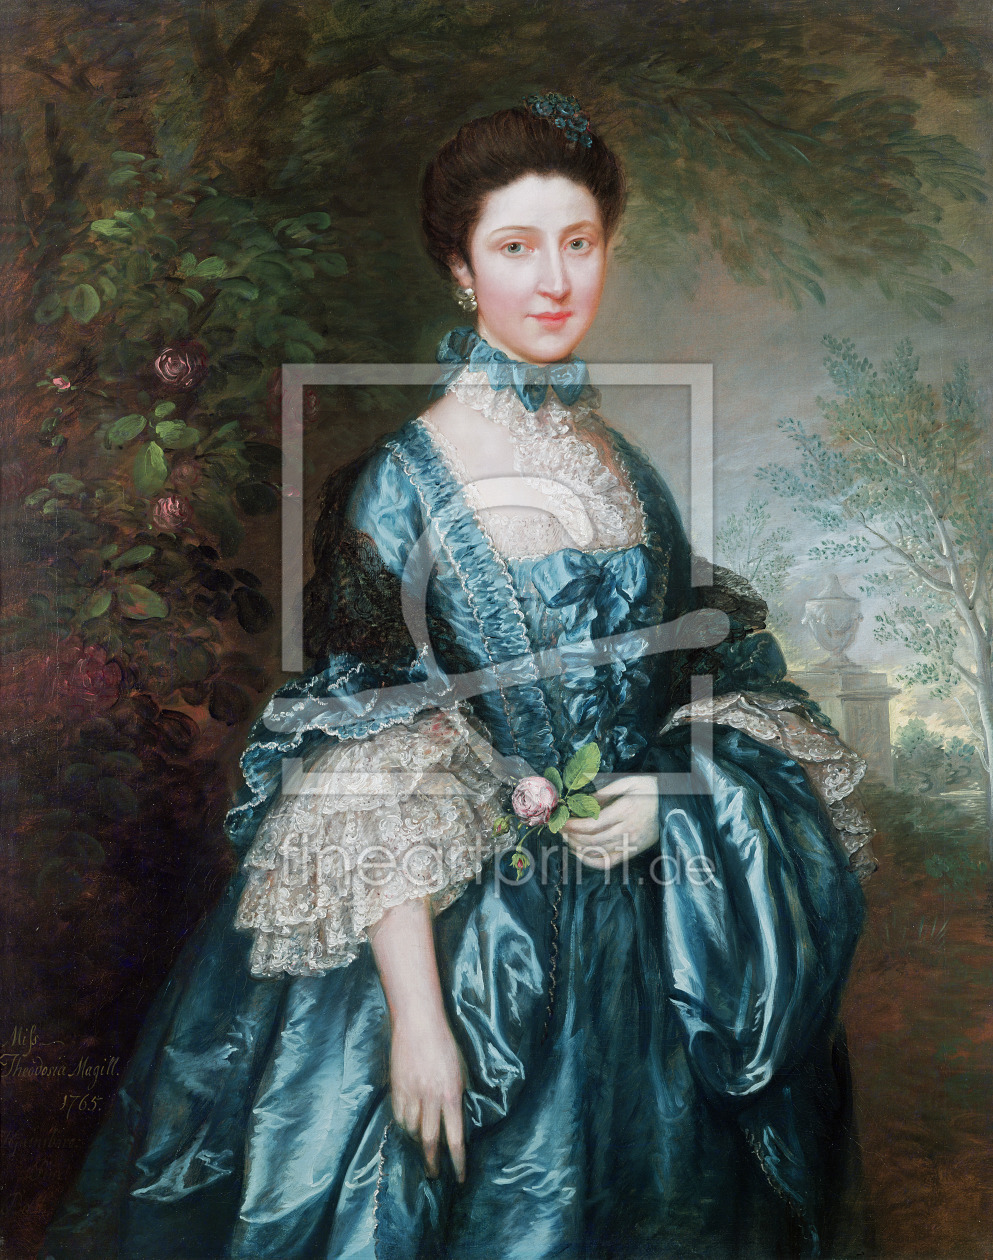 Bild-Nr.: 31000442 Miss Theodosia Magill, Countess Clanwilliam , 1765 erstellt von Gainsborough, Thomas